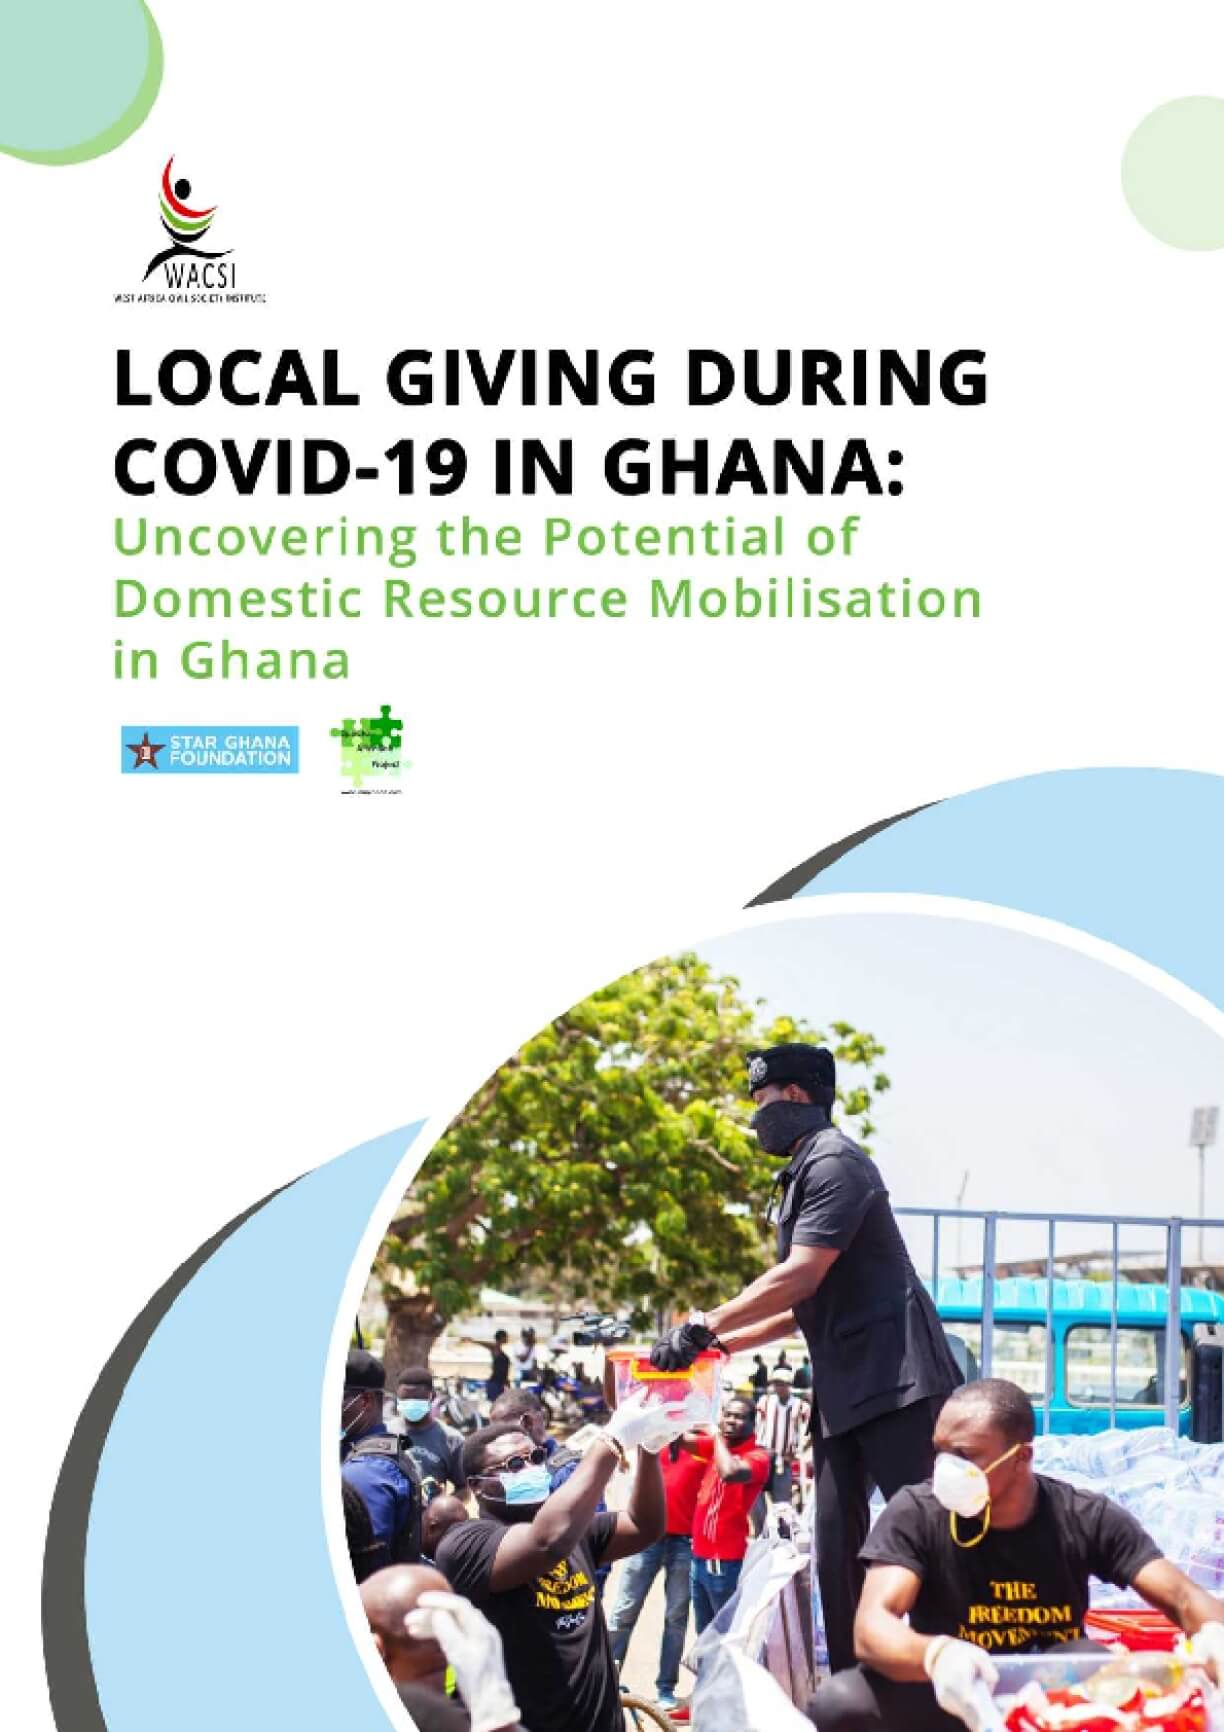 Local Giving During COVID-19 in Ghana: Uncovering the Potential of Domestic Resource Mobilisation in Ghana